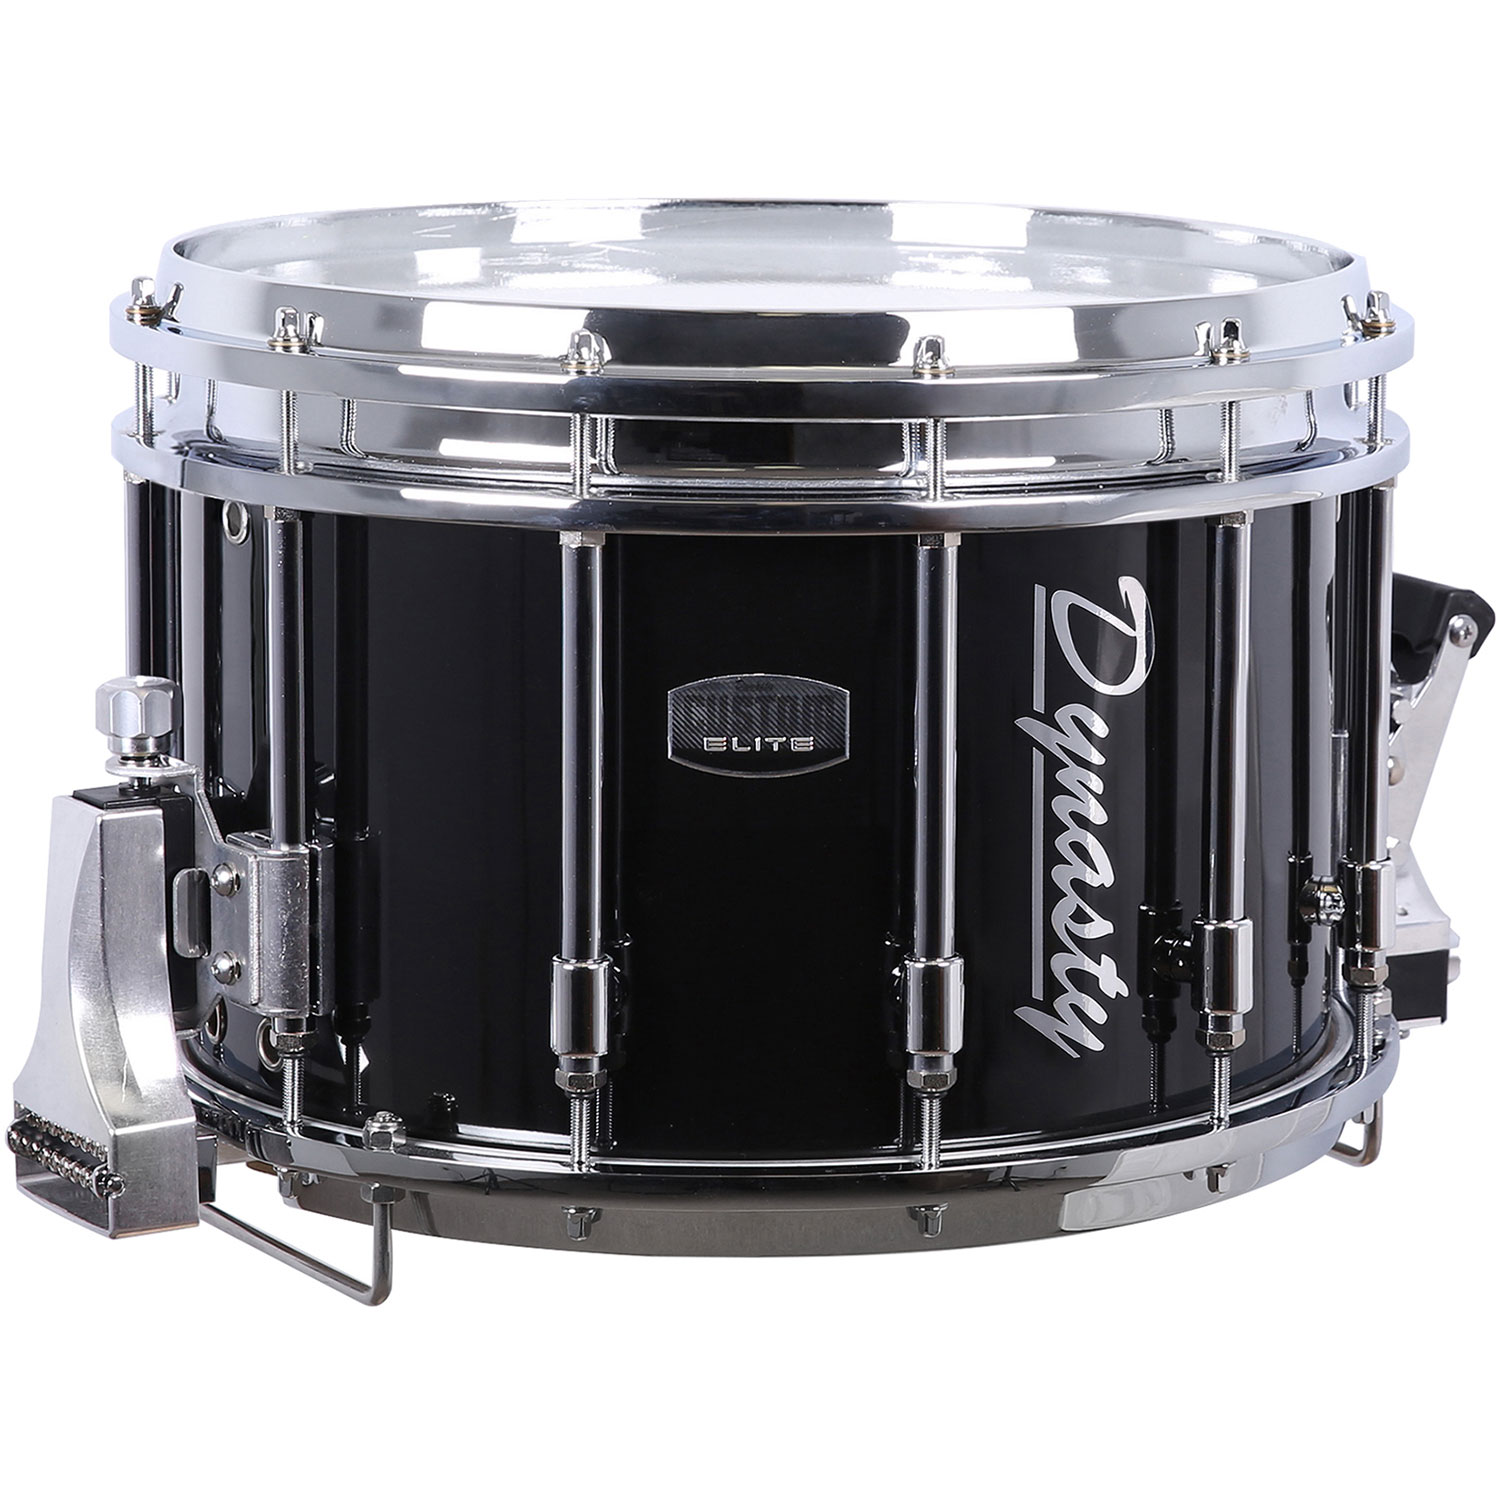 """Dynasty 14"""" x 10"""" DFS Shorty Marching Snare Drum with Chrome Hardware in Black"""